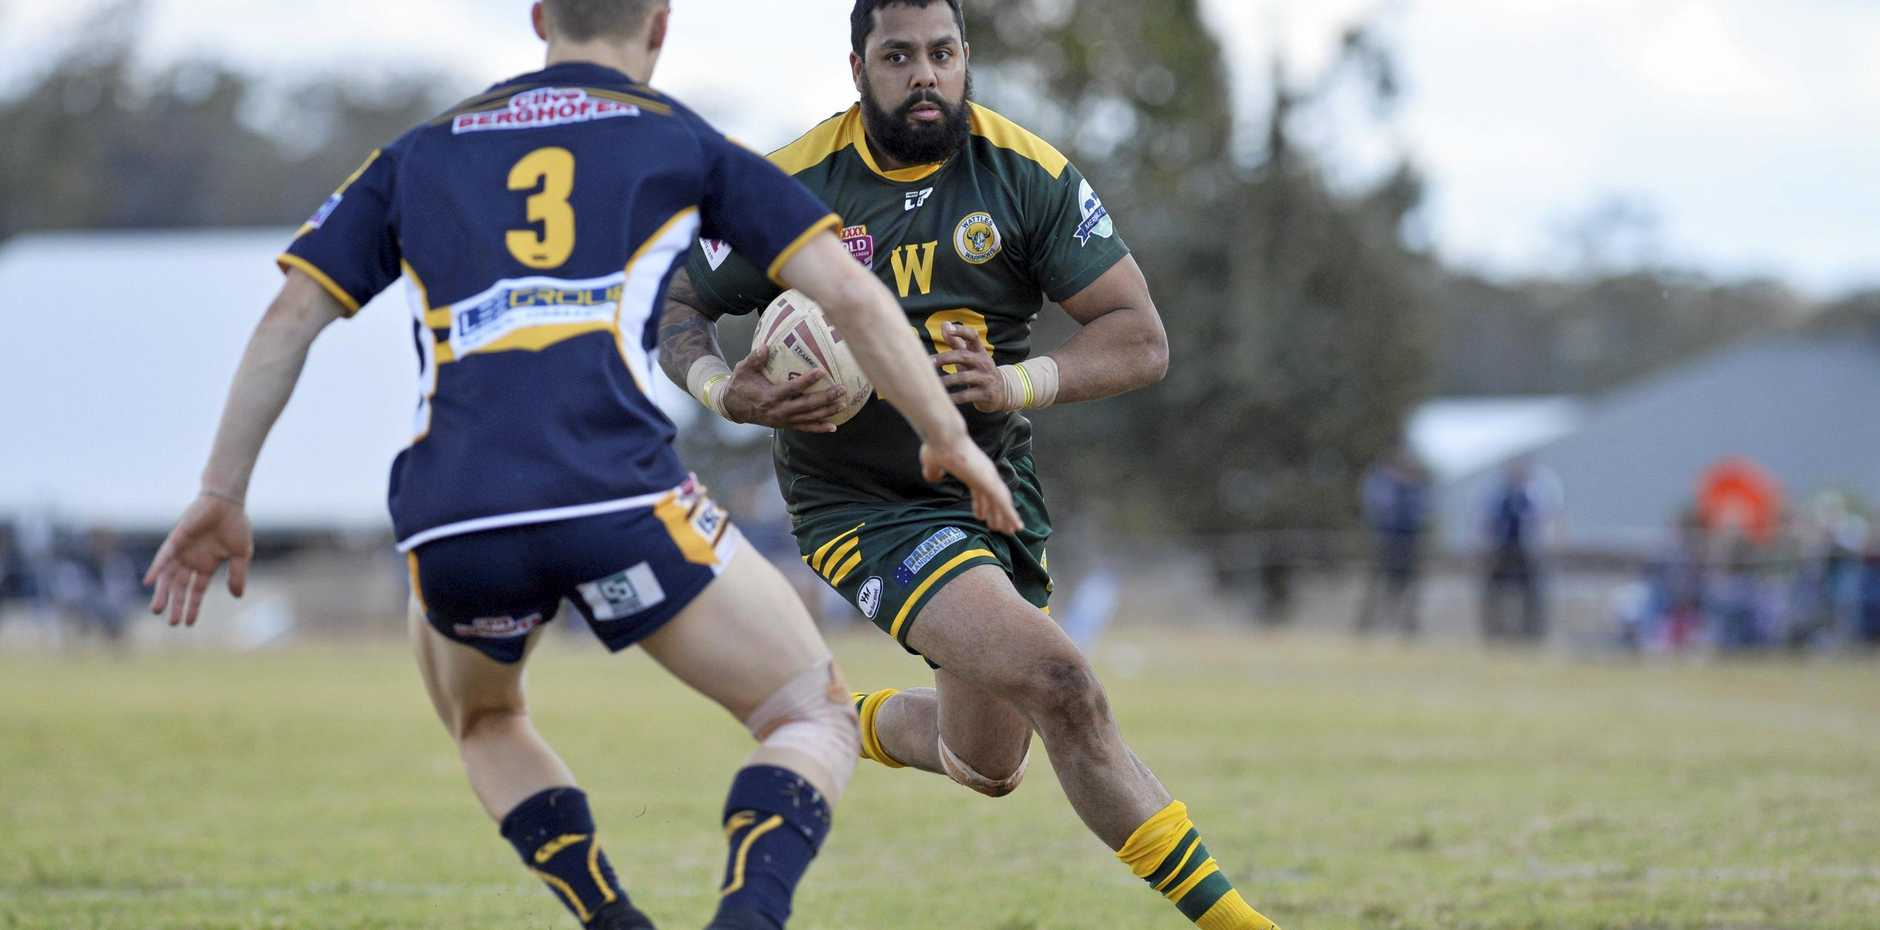 Nathan Gaulton, of Wattles, is in fine form this season.